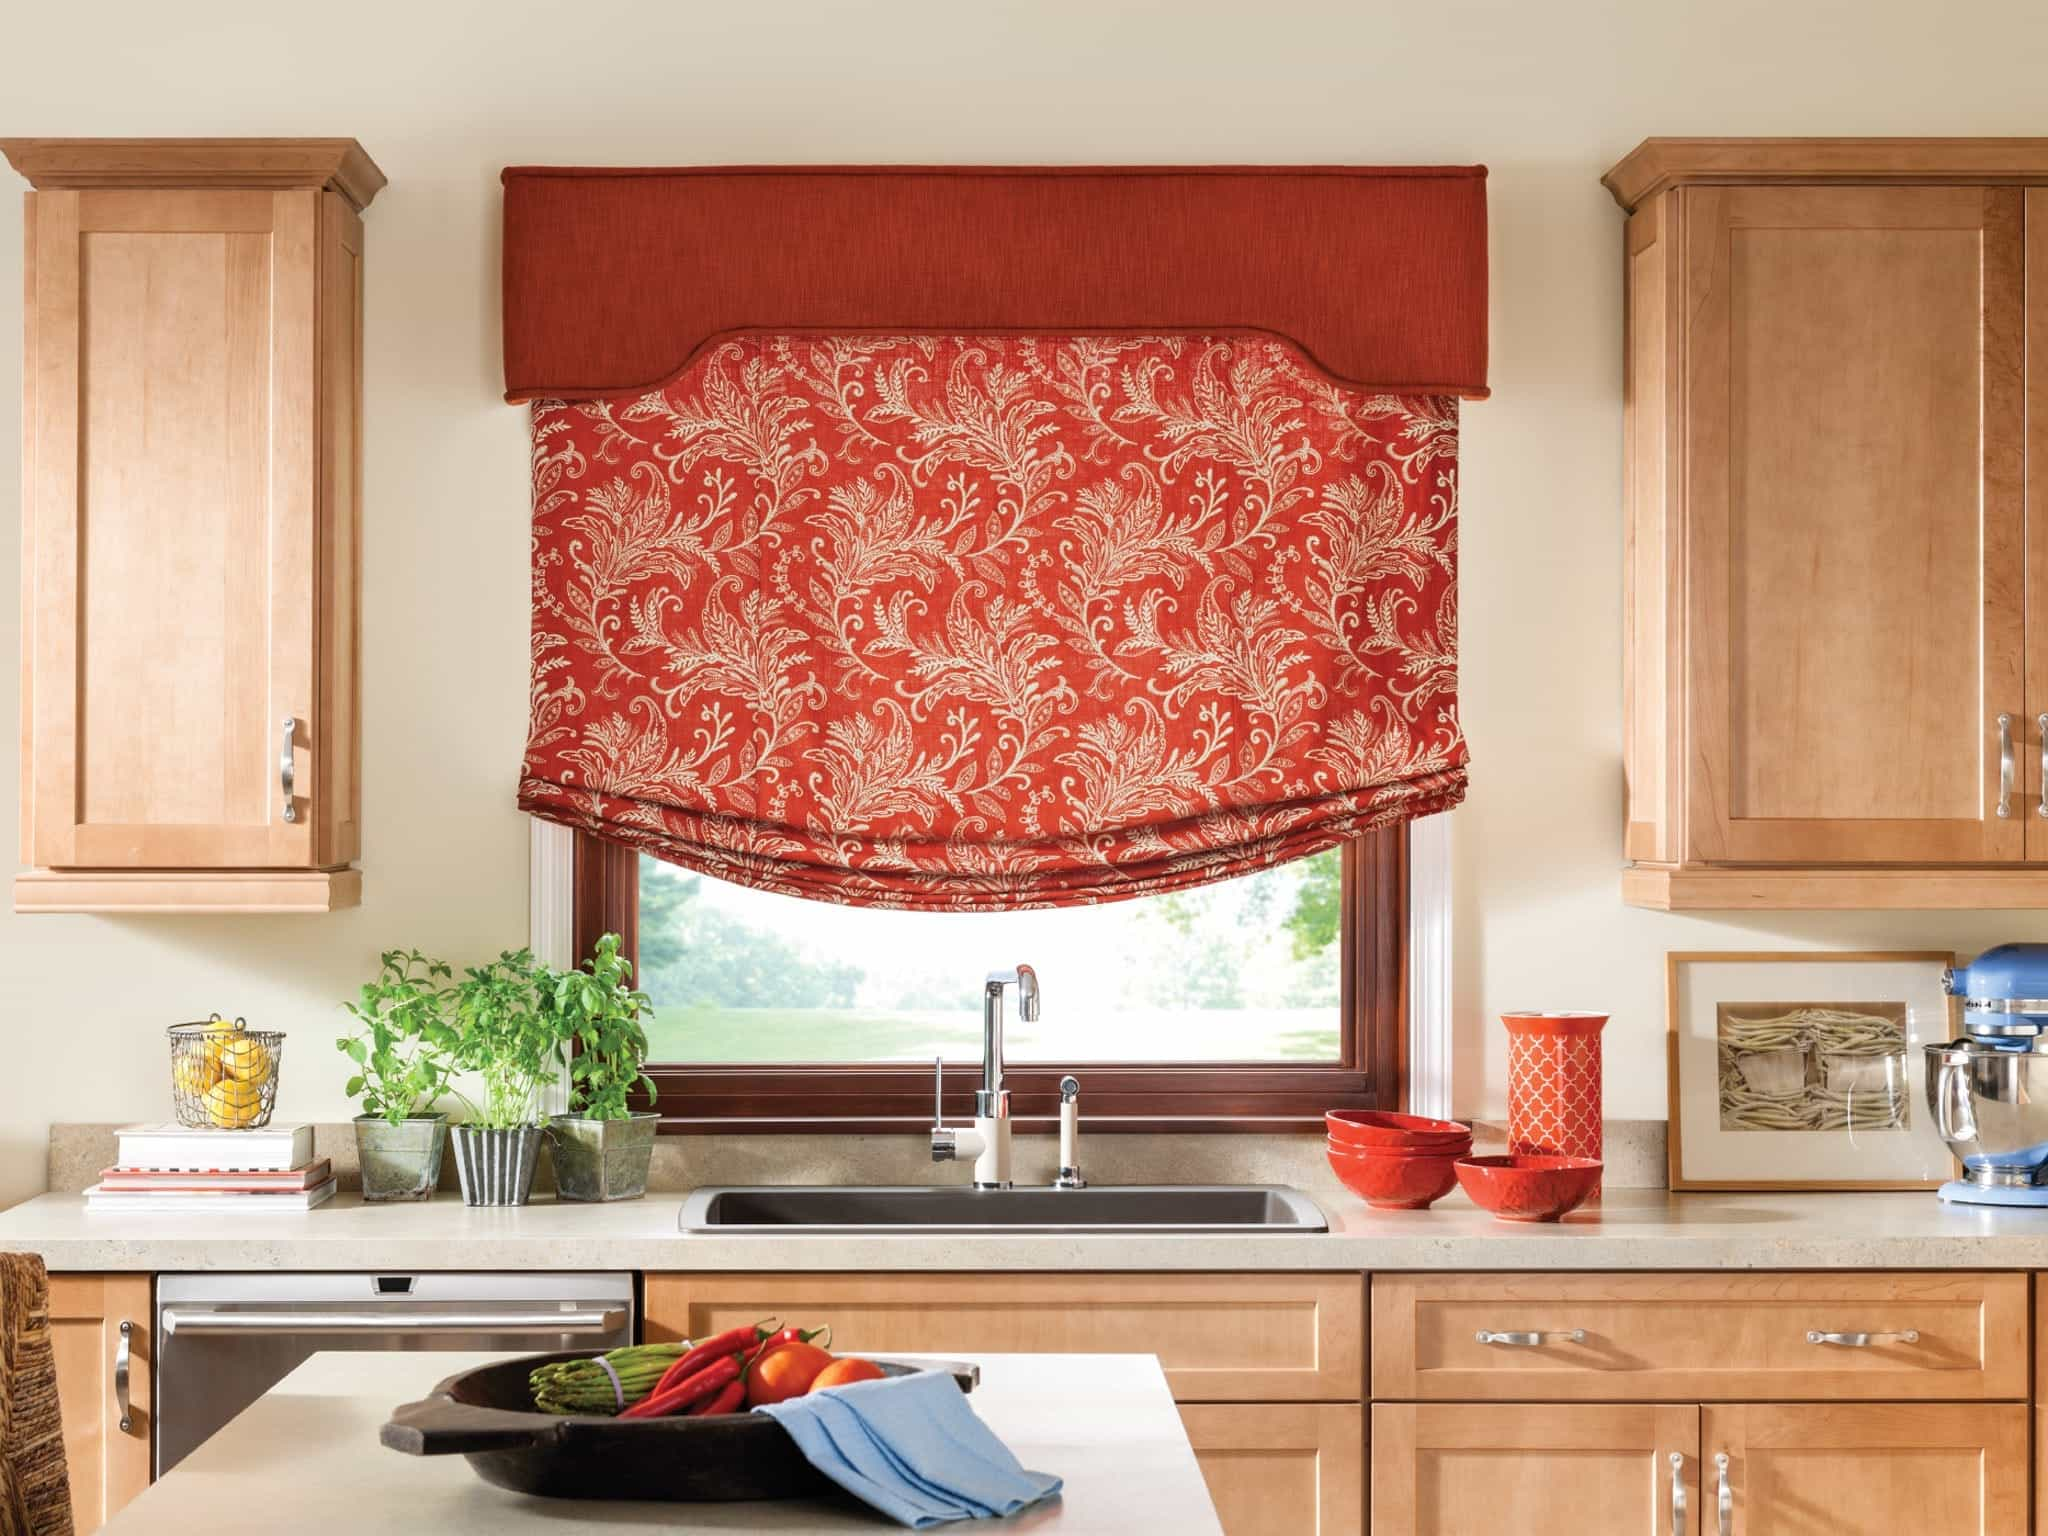 Red Roman Shade Curtain In Kitchen Window (Image 6 of 11)